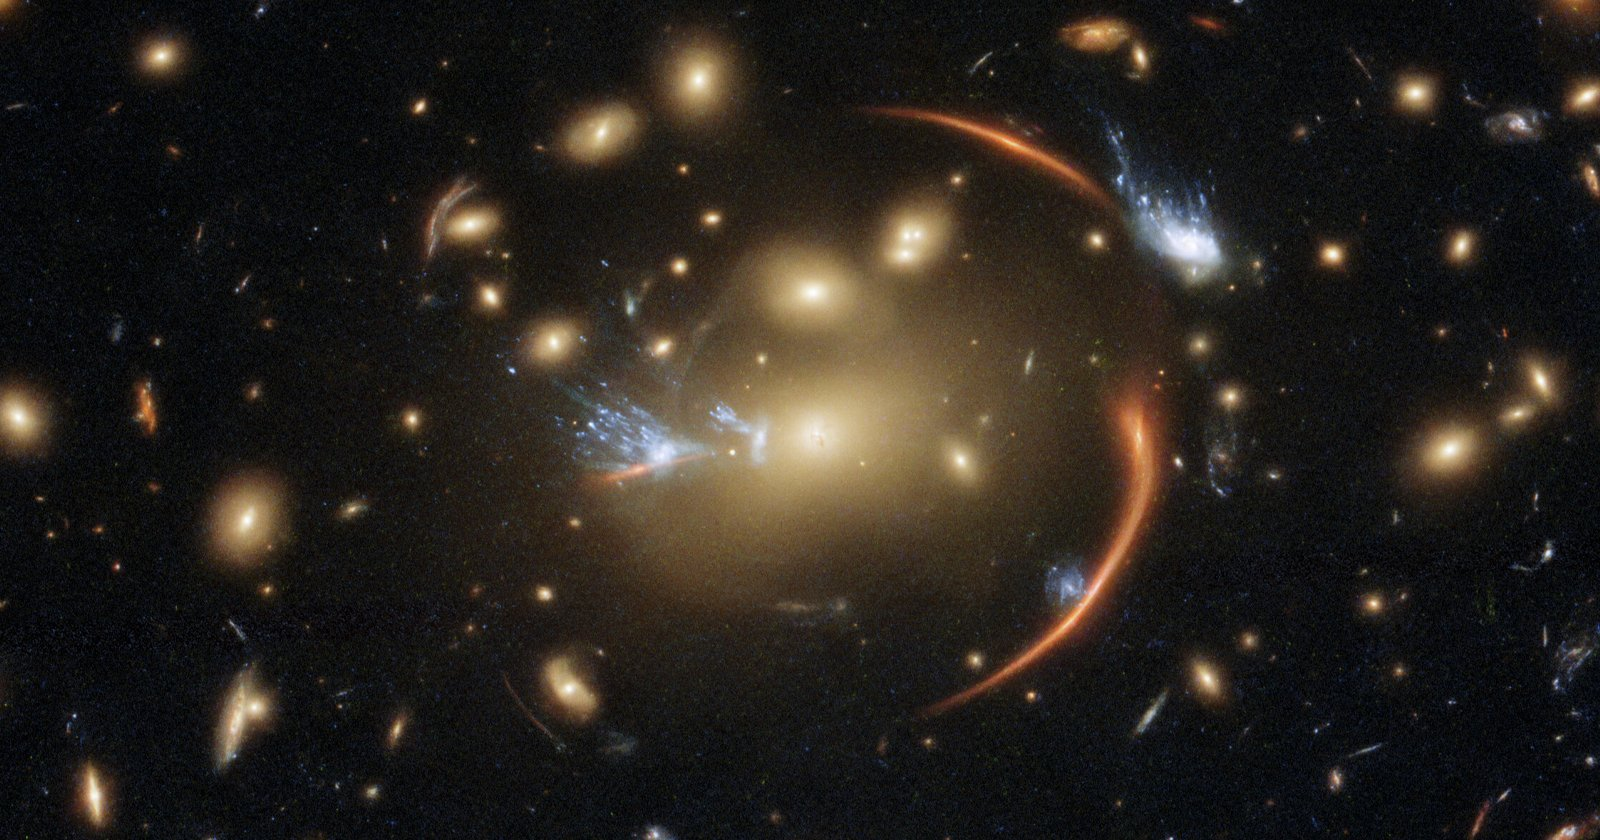 This Galaxy is 10 Billion Light Years Away, Visible Through a Cosmic Lens